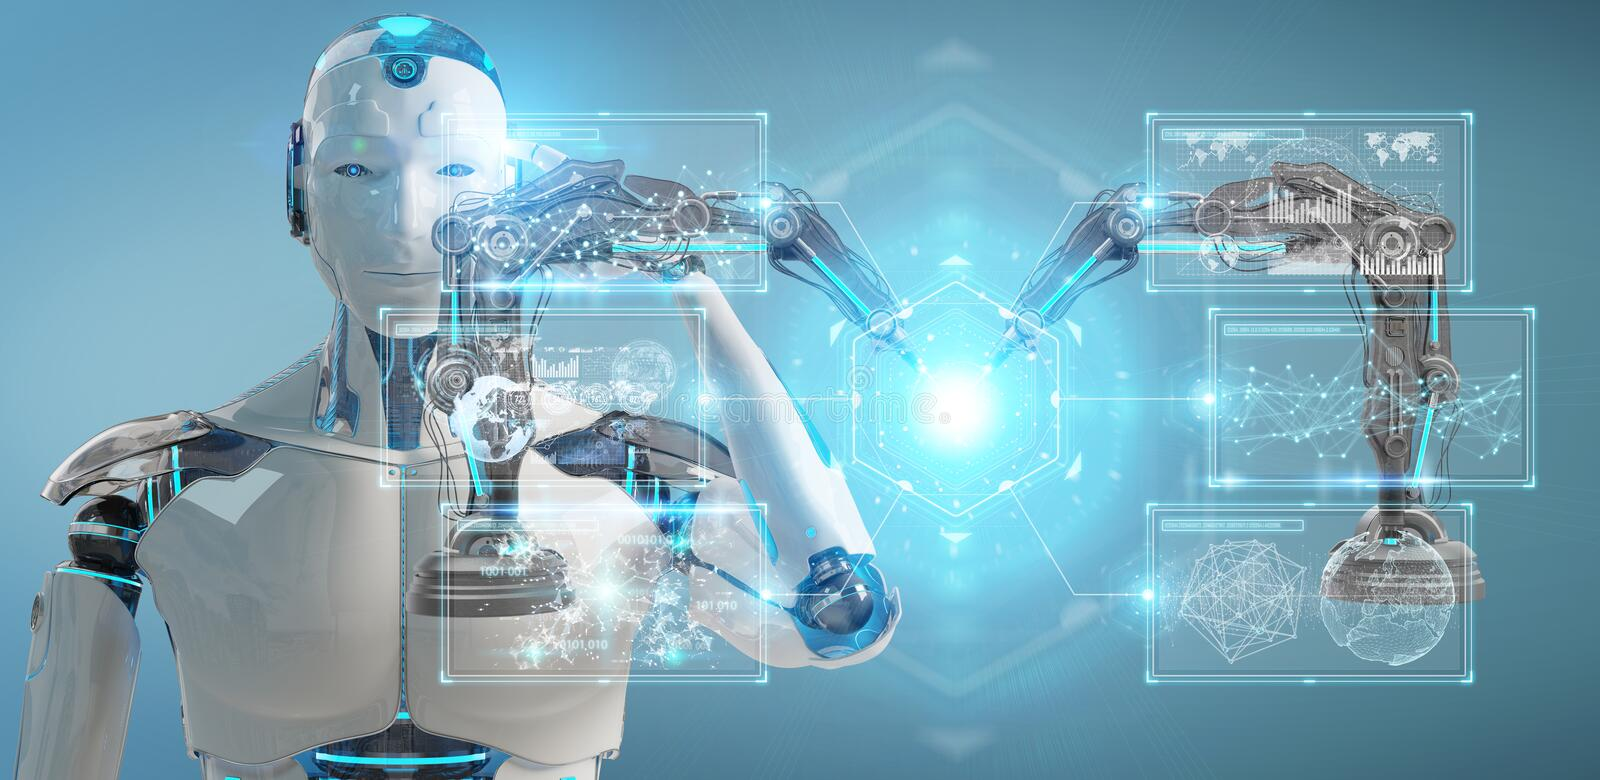 White man robot using robotics arms with digital screen 3D rendering stock illustration